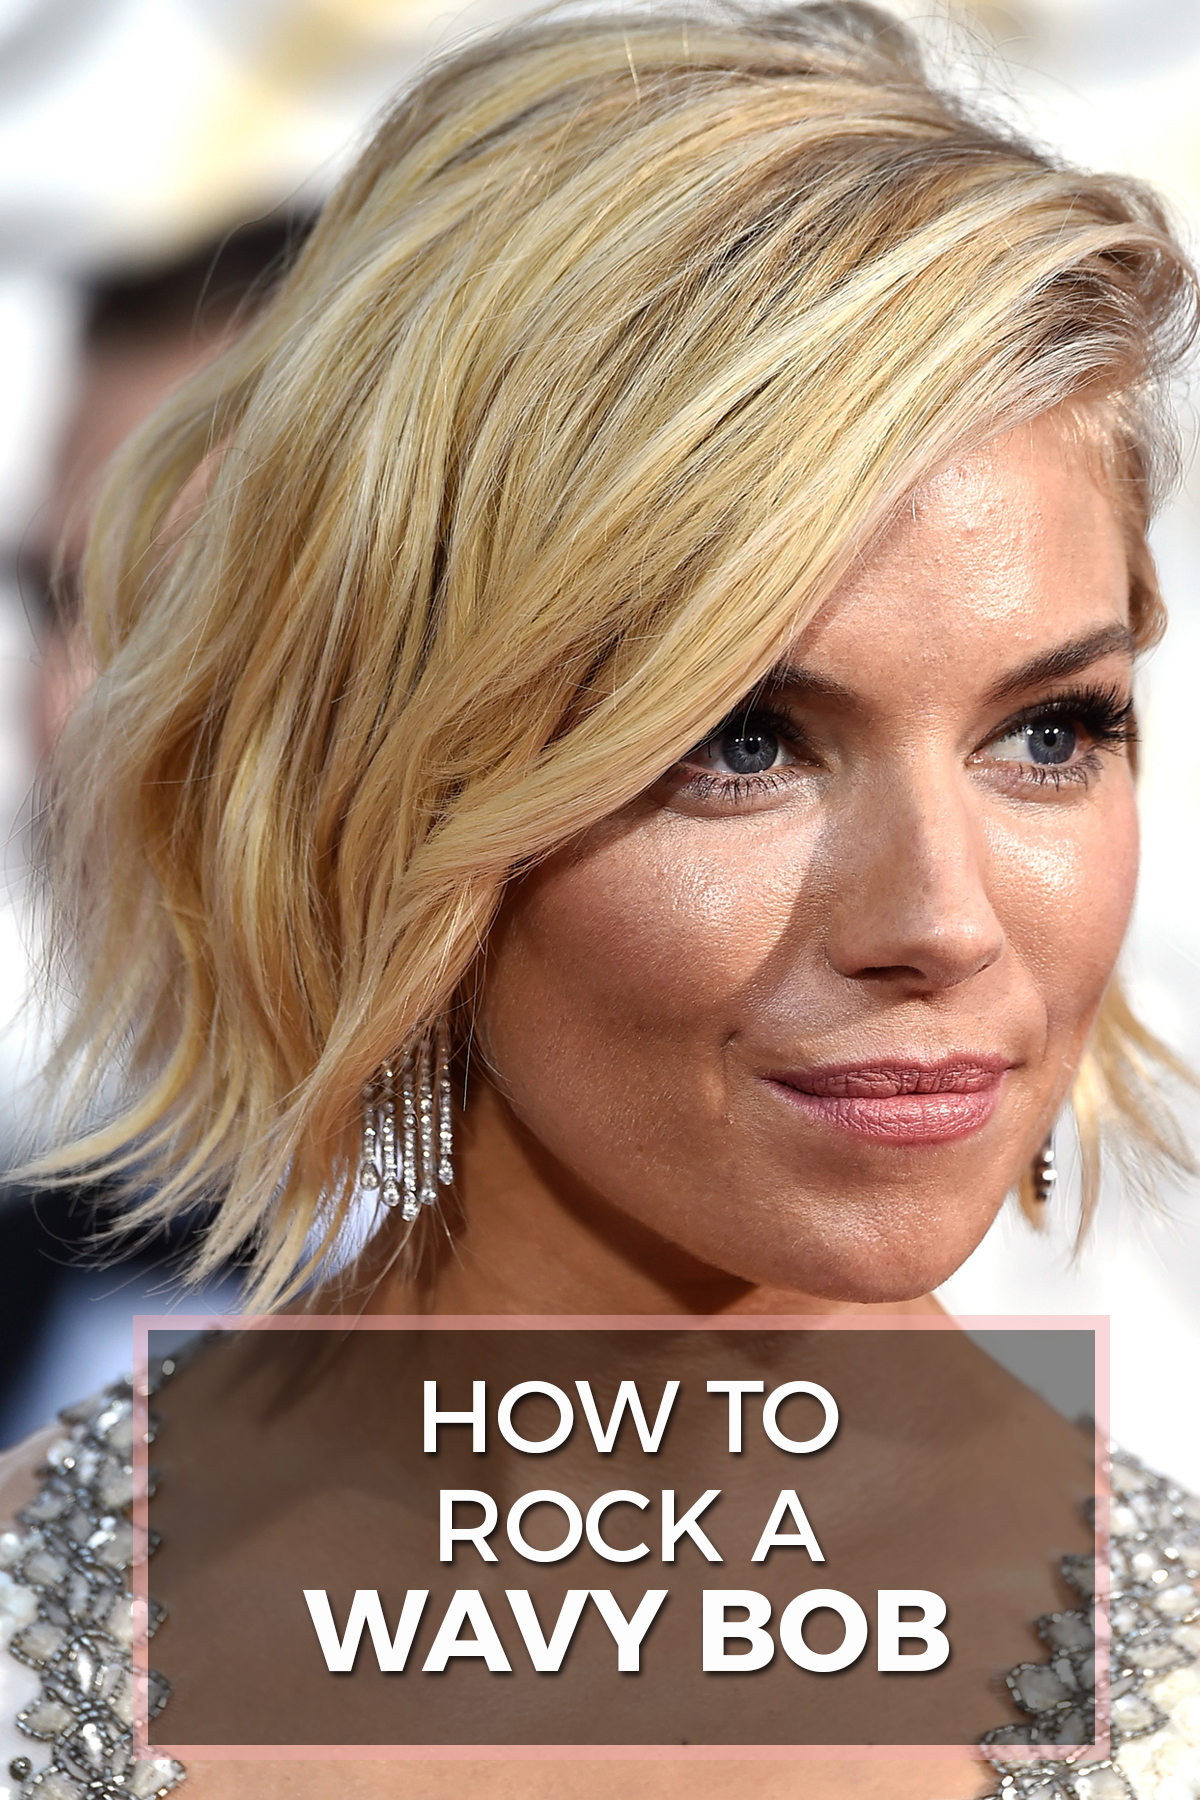 Cool Wavy Bob Hairstyles How To Rock This Summer39S 39It39 Cut The Hairstyles For Women Draintrainus